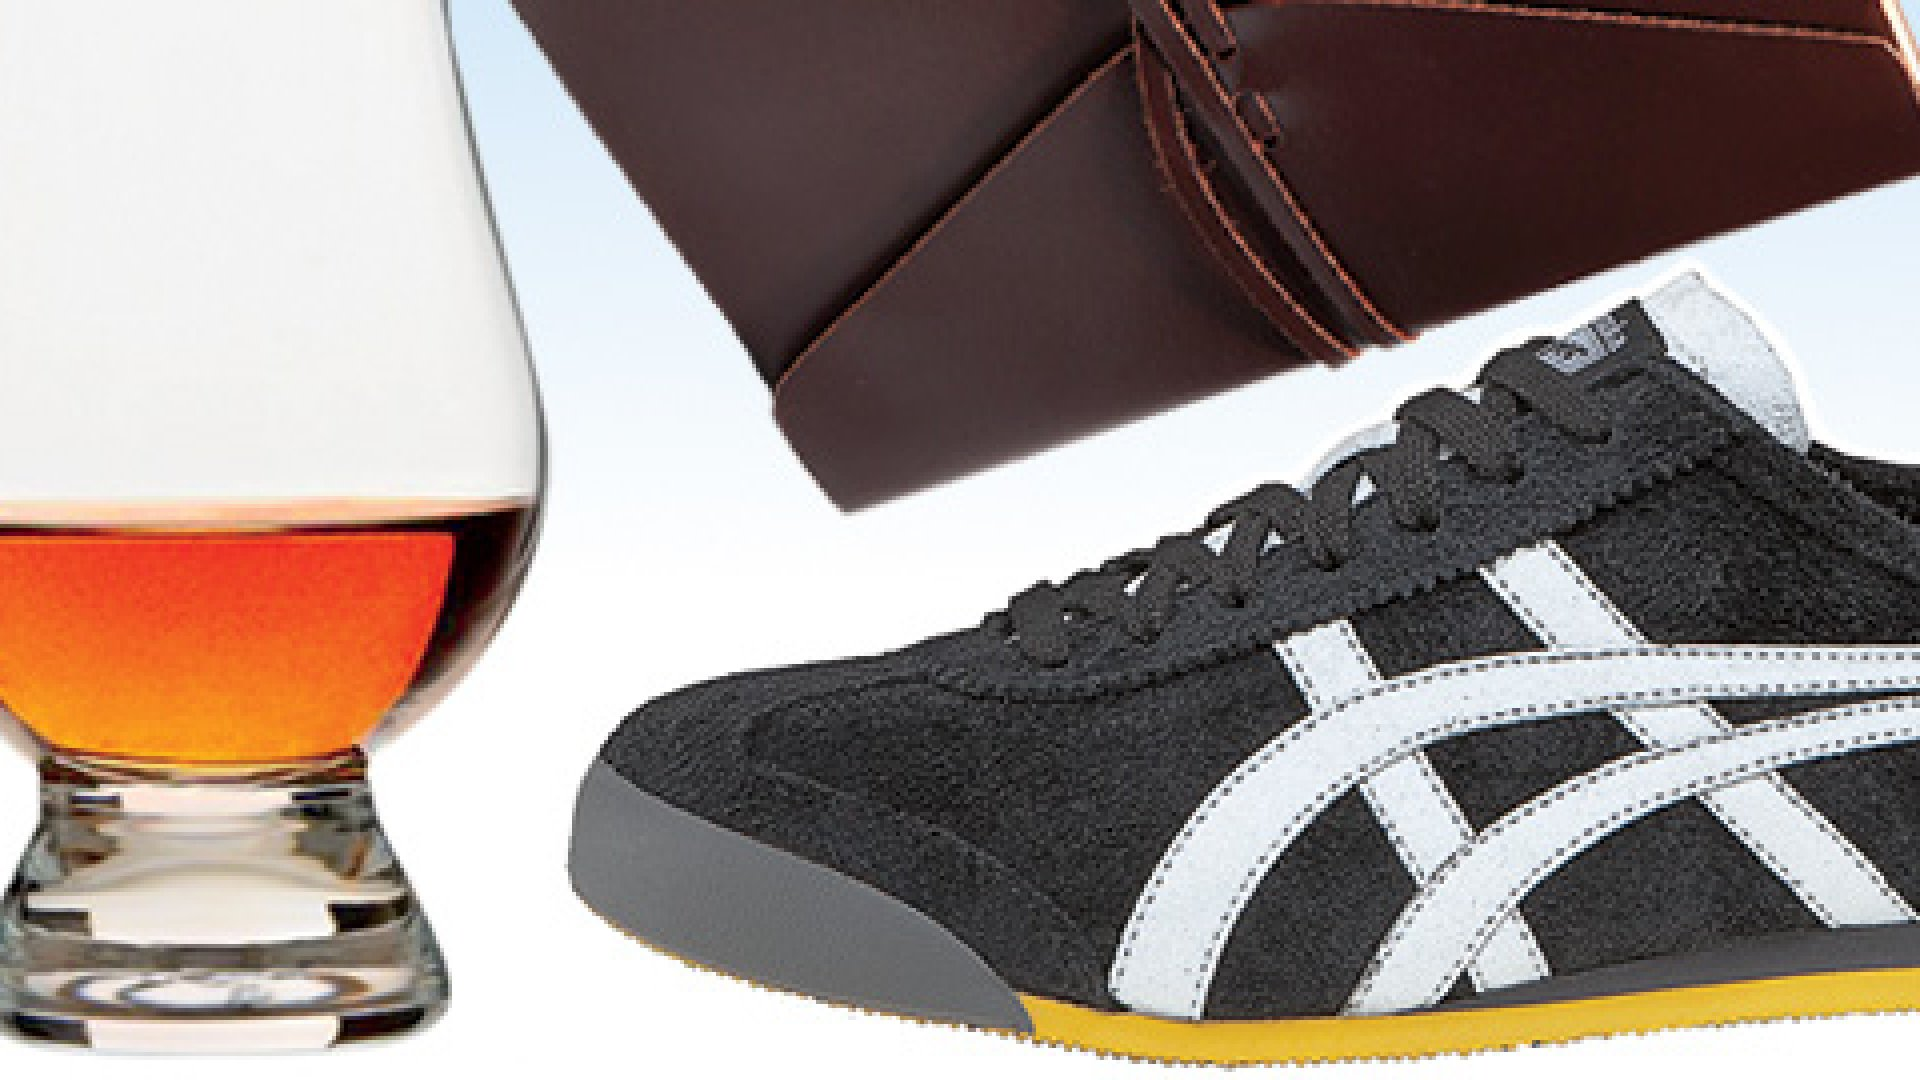 From left: Traditional Lead-Free-Crystal Glencairn Glass, Brown Bombay Tie Journal, Asics Onitsuka Tiger Mexico 66.